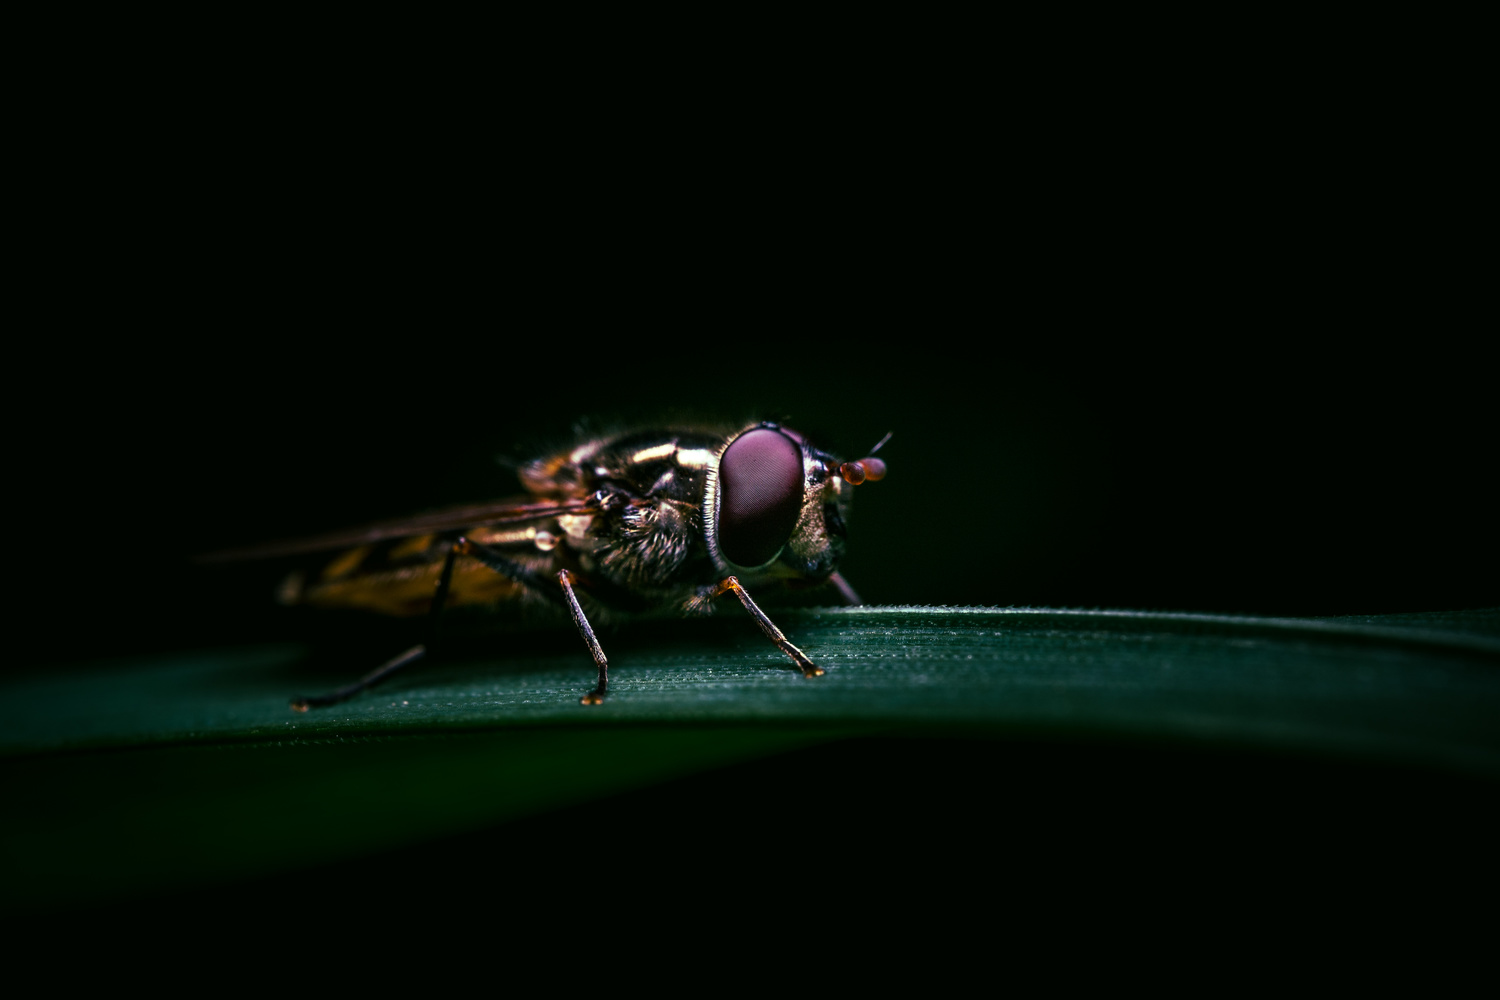 Fly in the spotlight by Vincent Langen